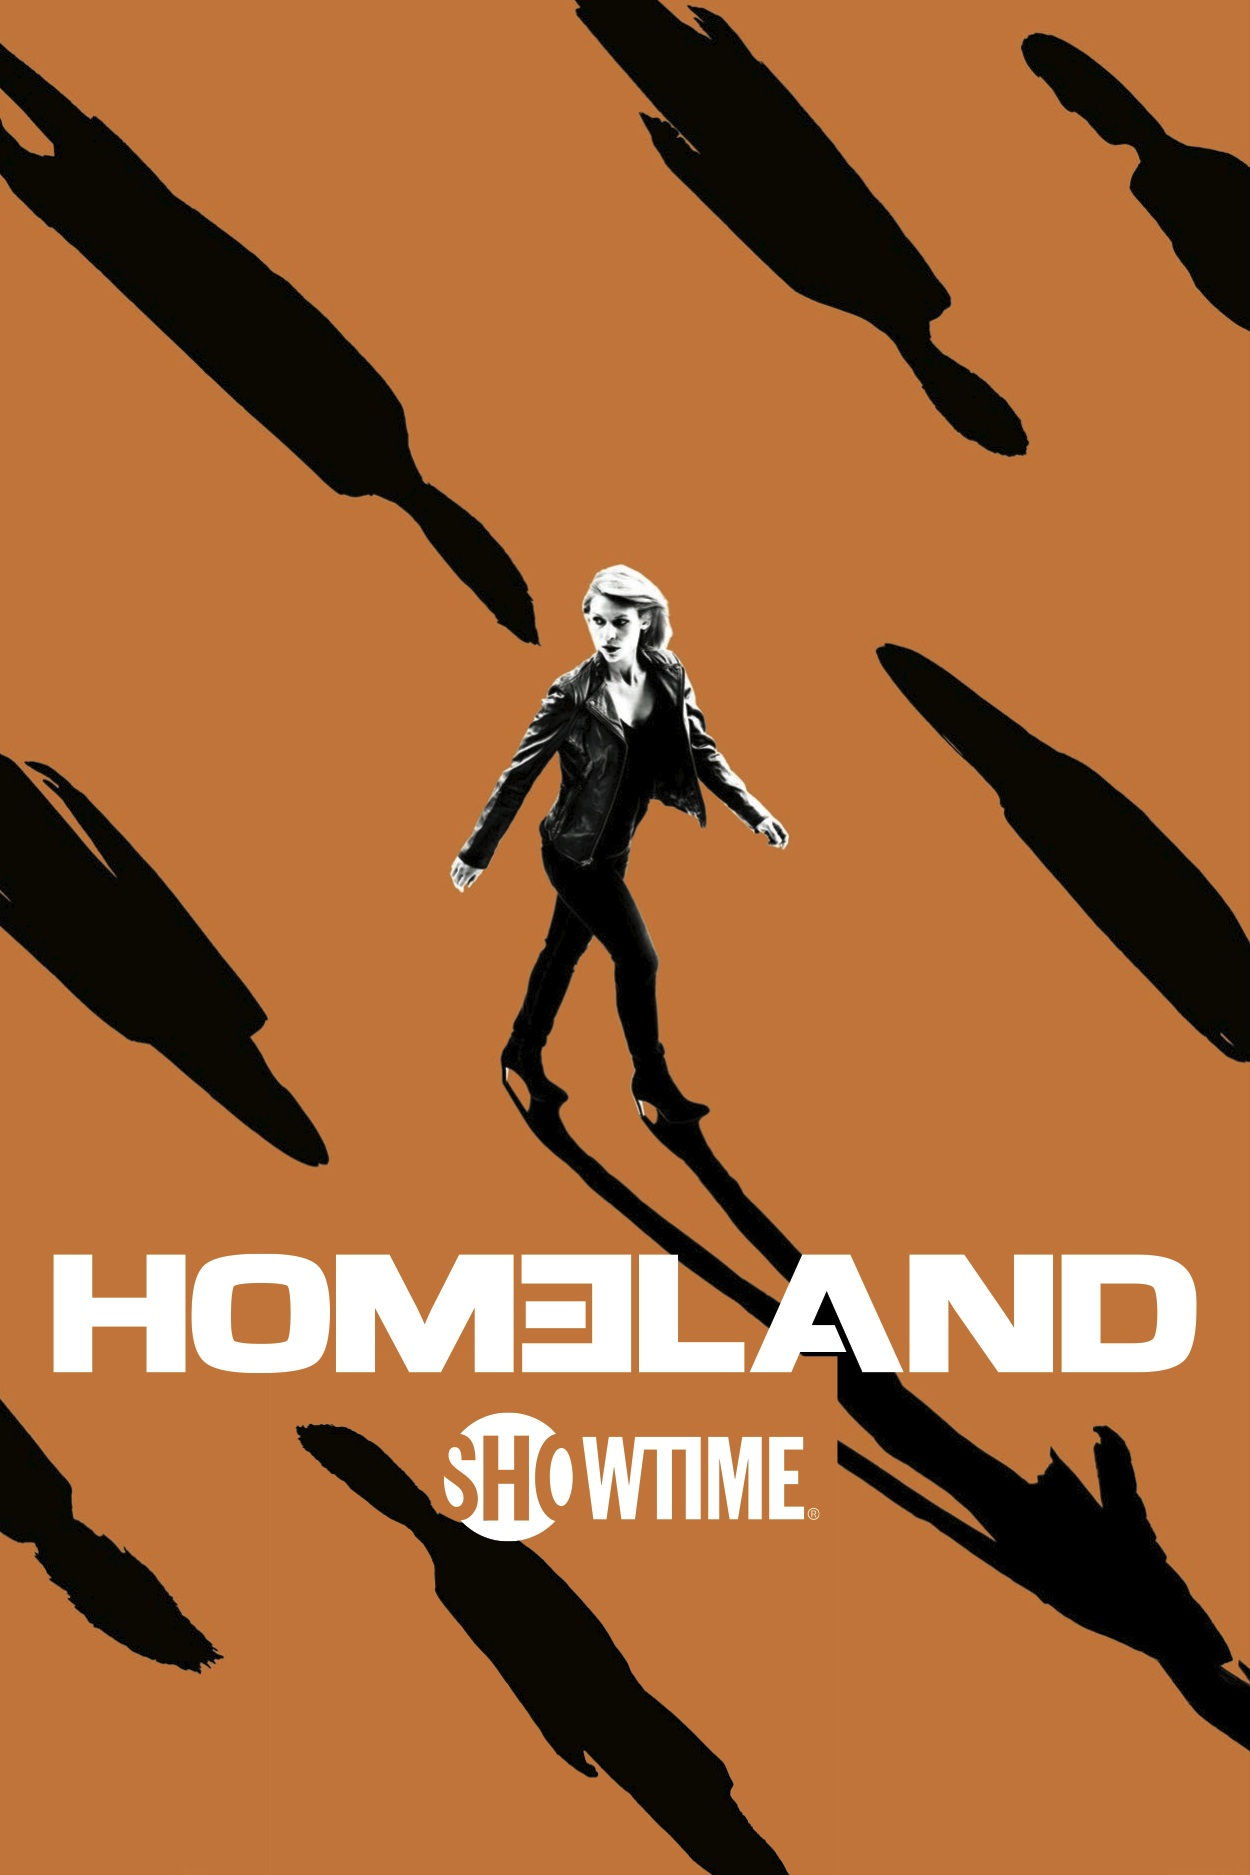 Homeland_S7_StyleGuide_Vertical_No-tune-in_600x900.jpg